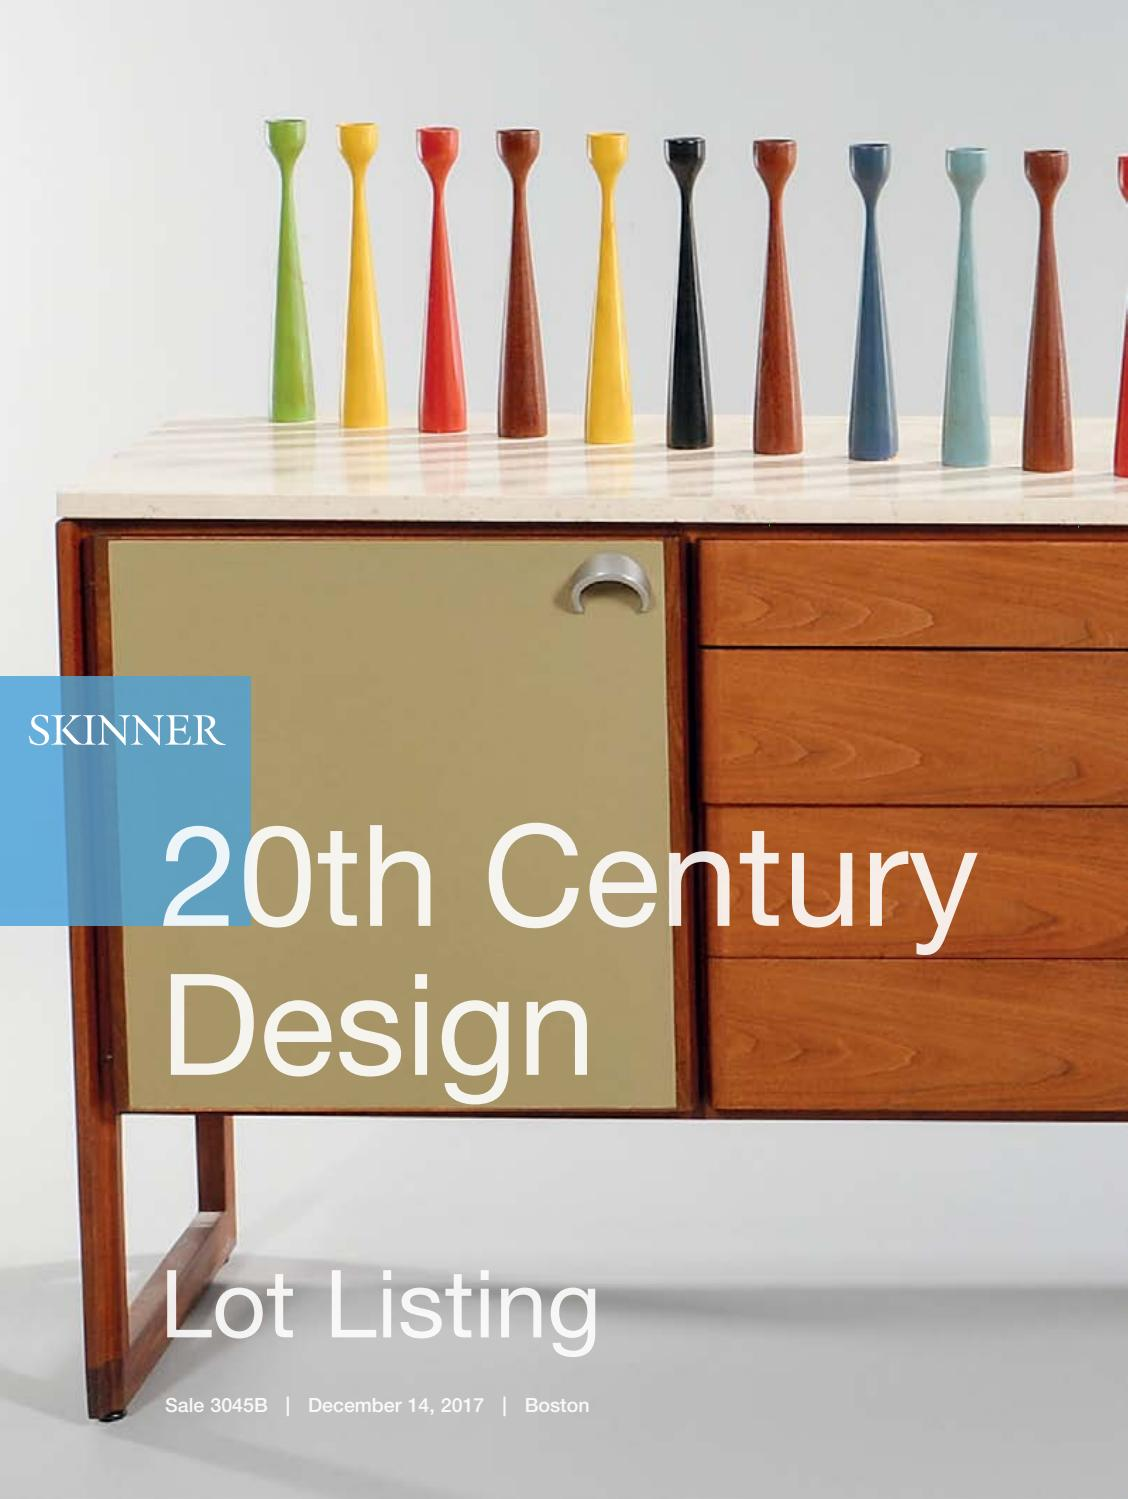 Sedie Frau Liz B 20th Century Design By Skinner Inc Issuu